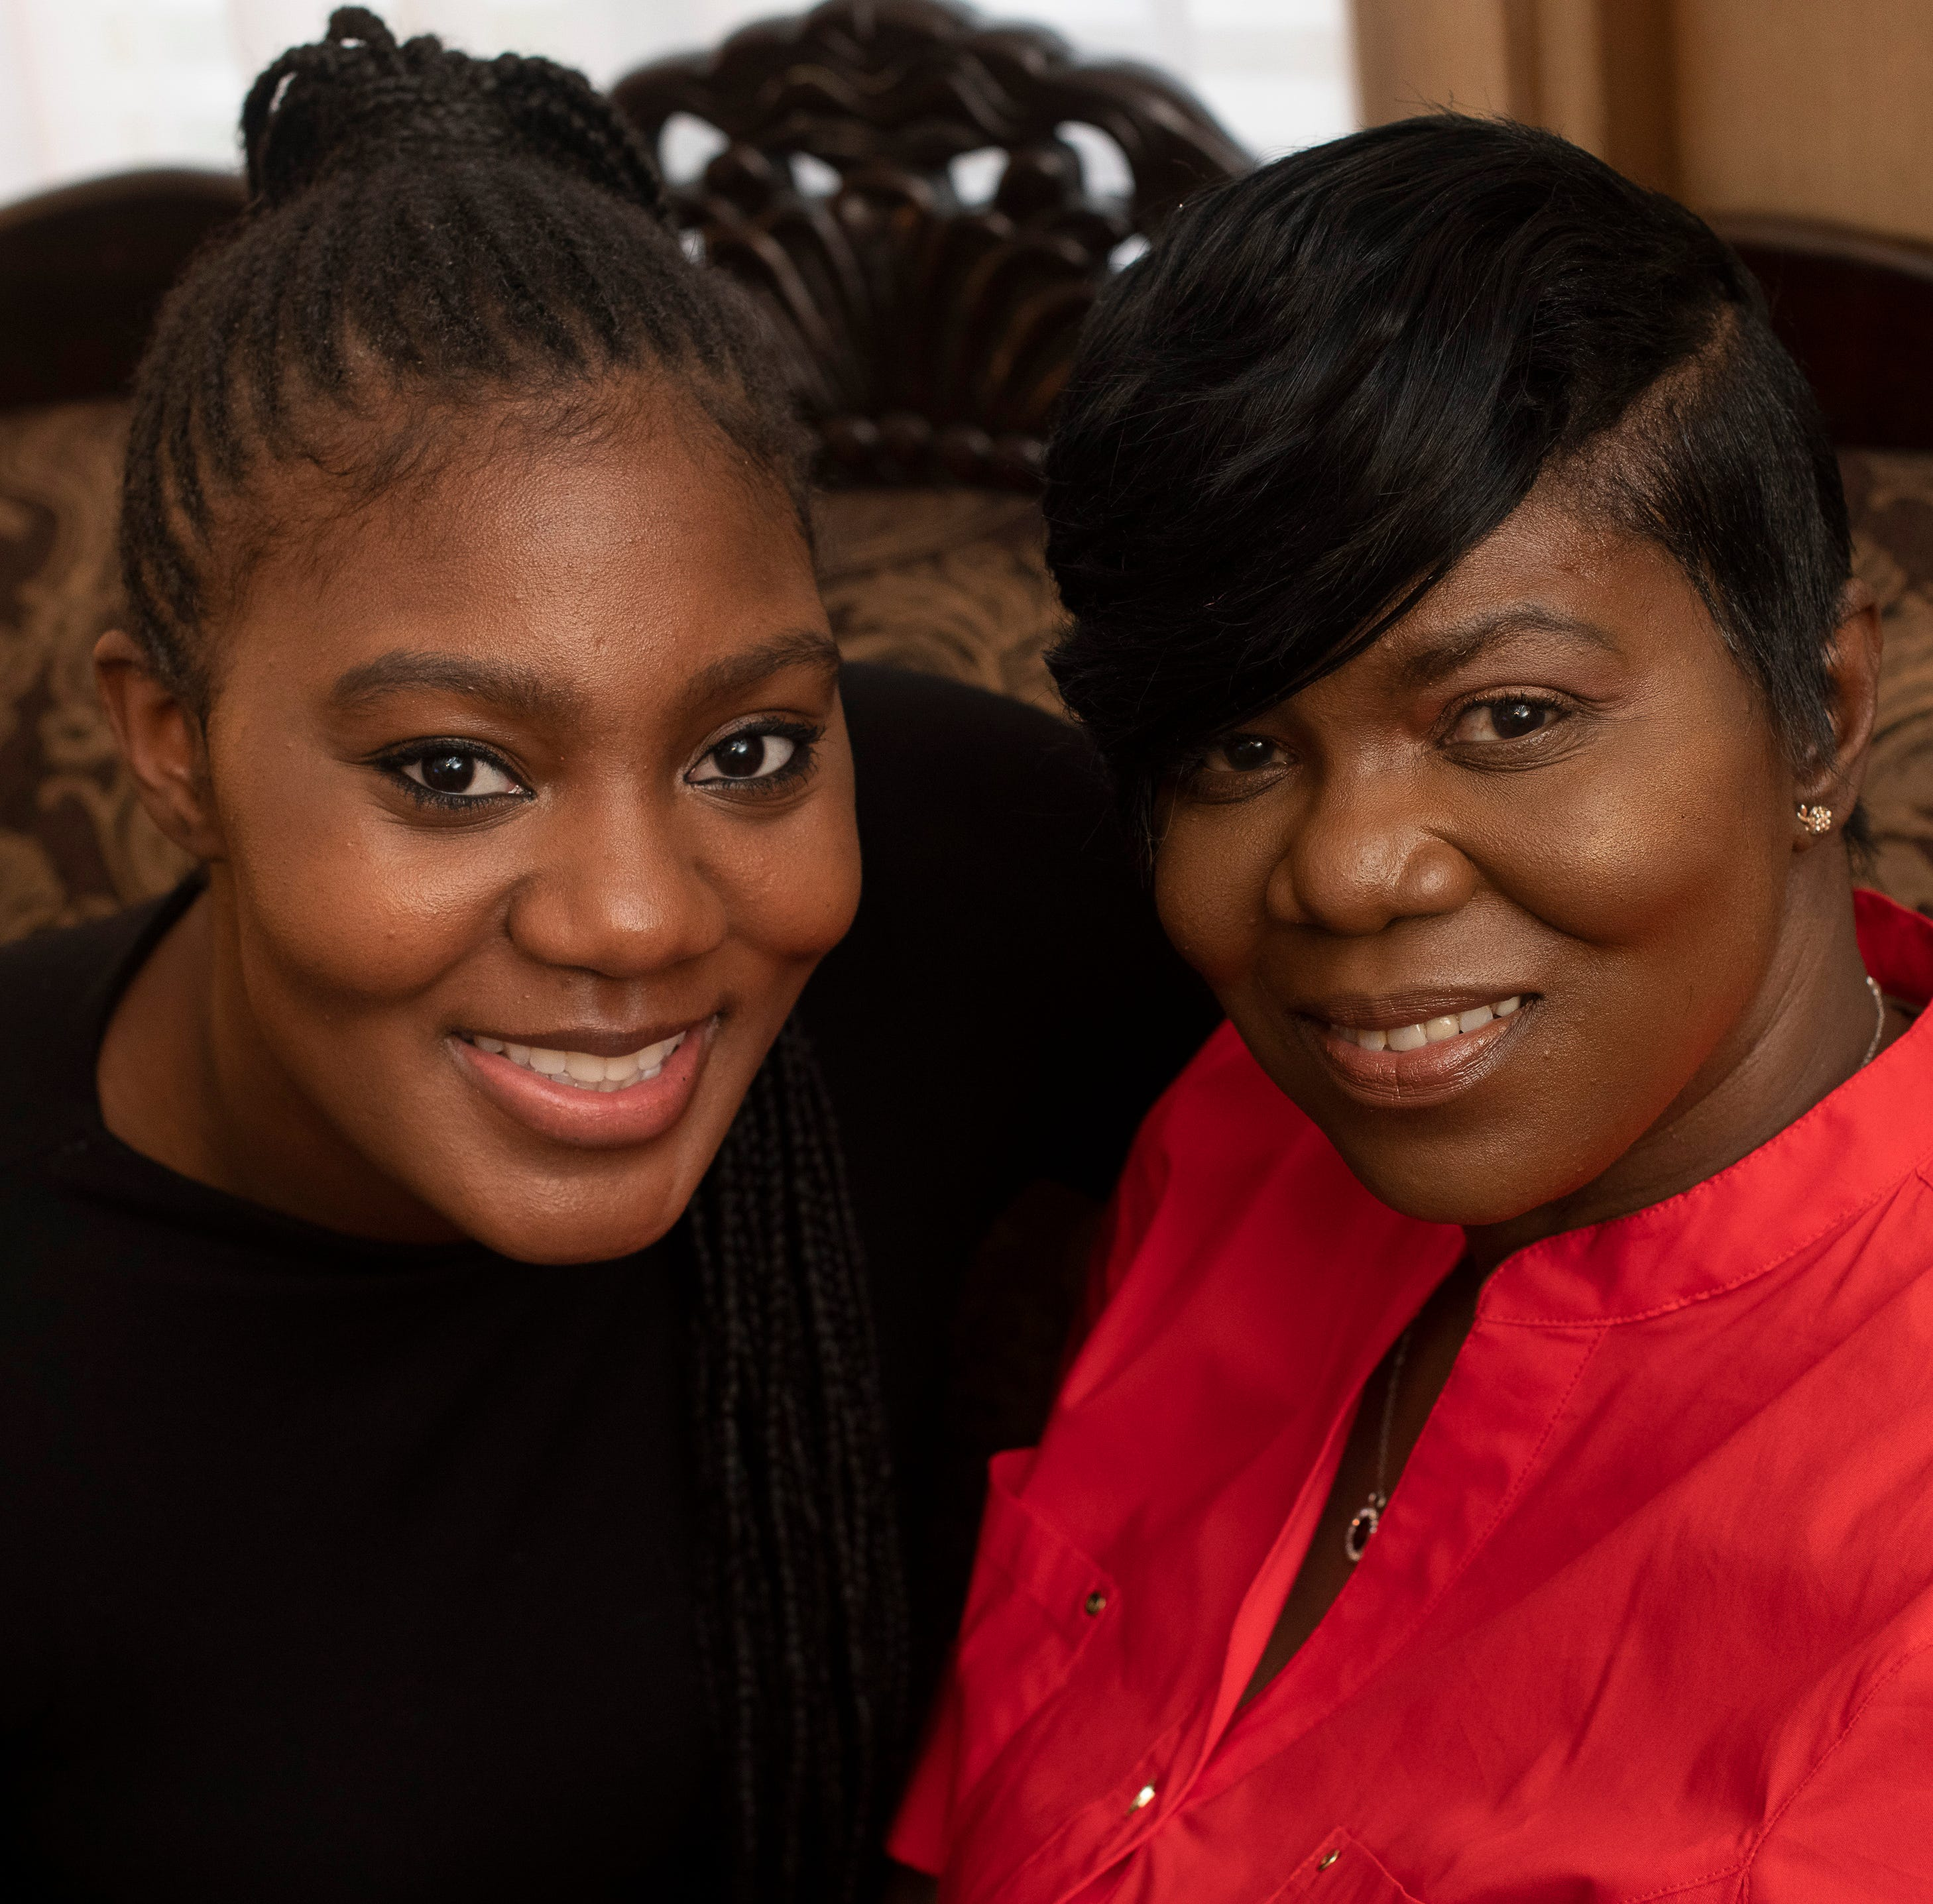 Saving mom: How former Kentucky basketball star Alex Poythress' sister gave their mother life